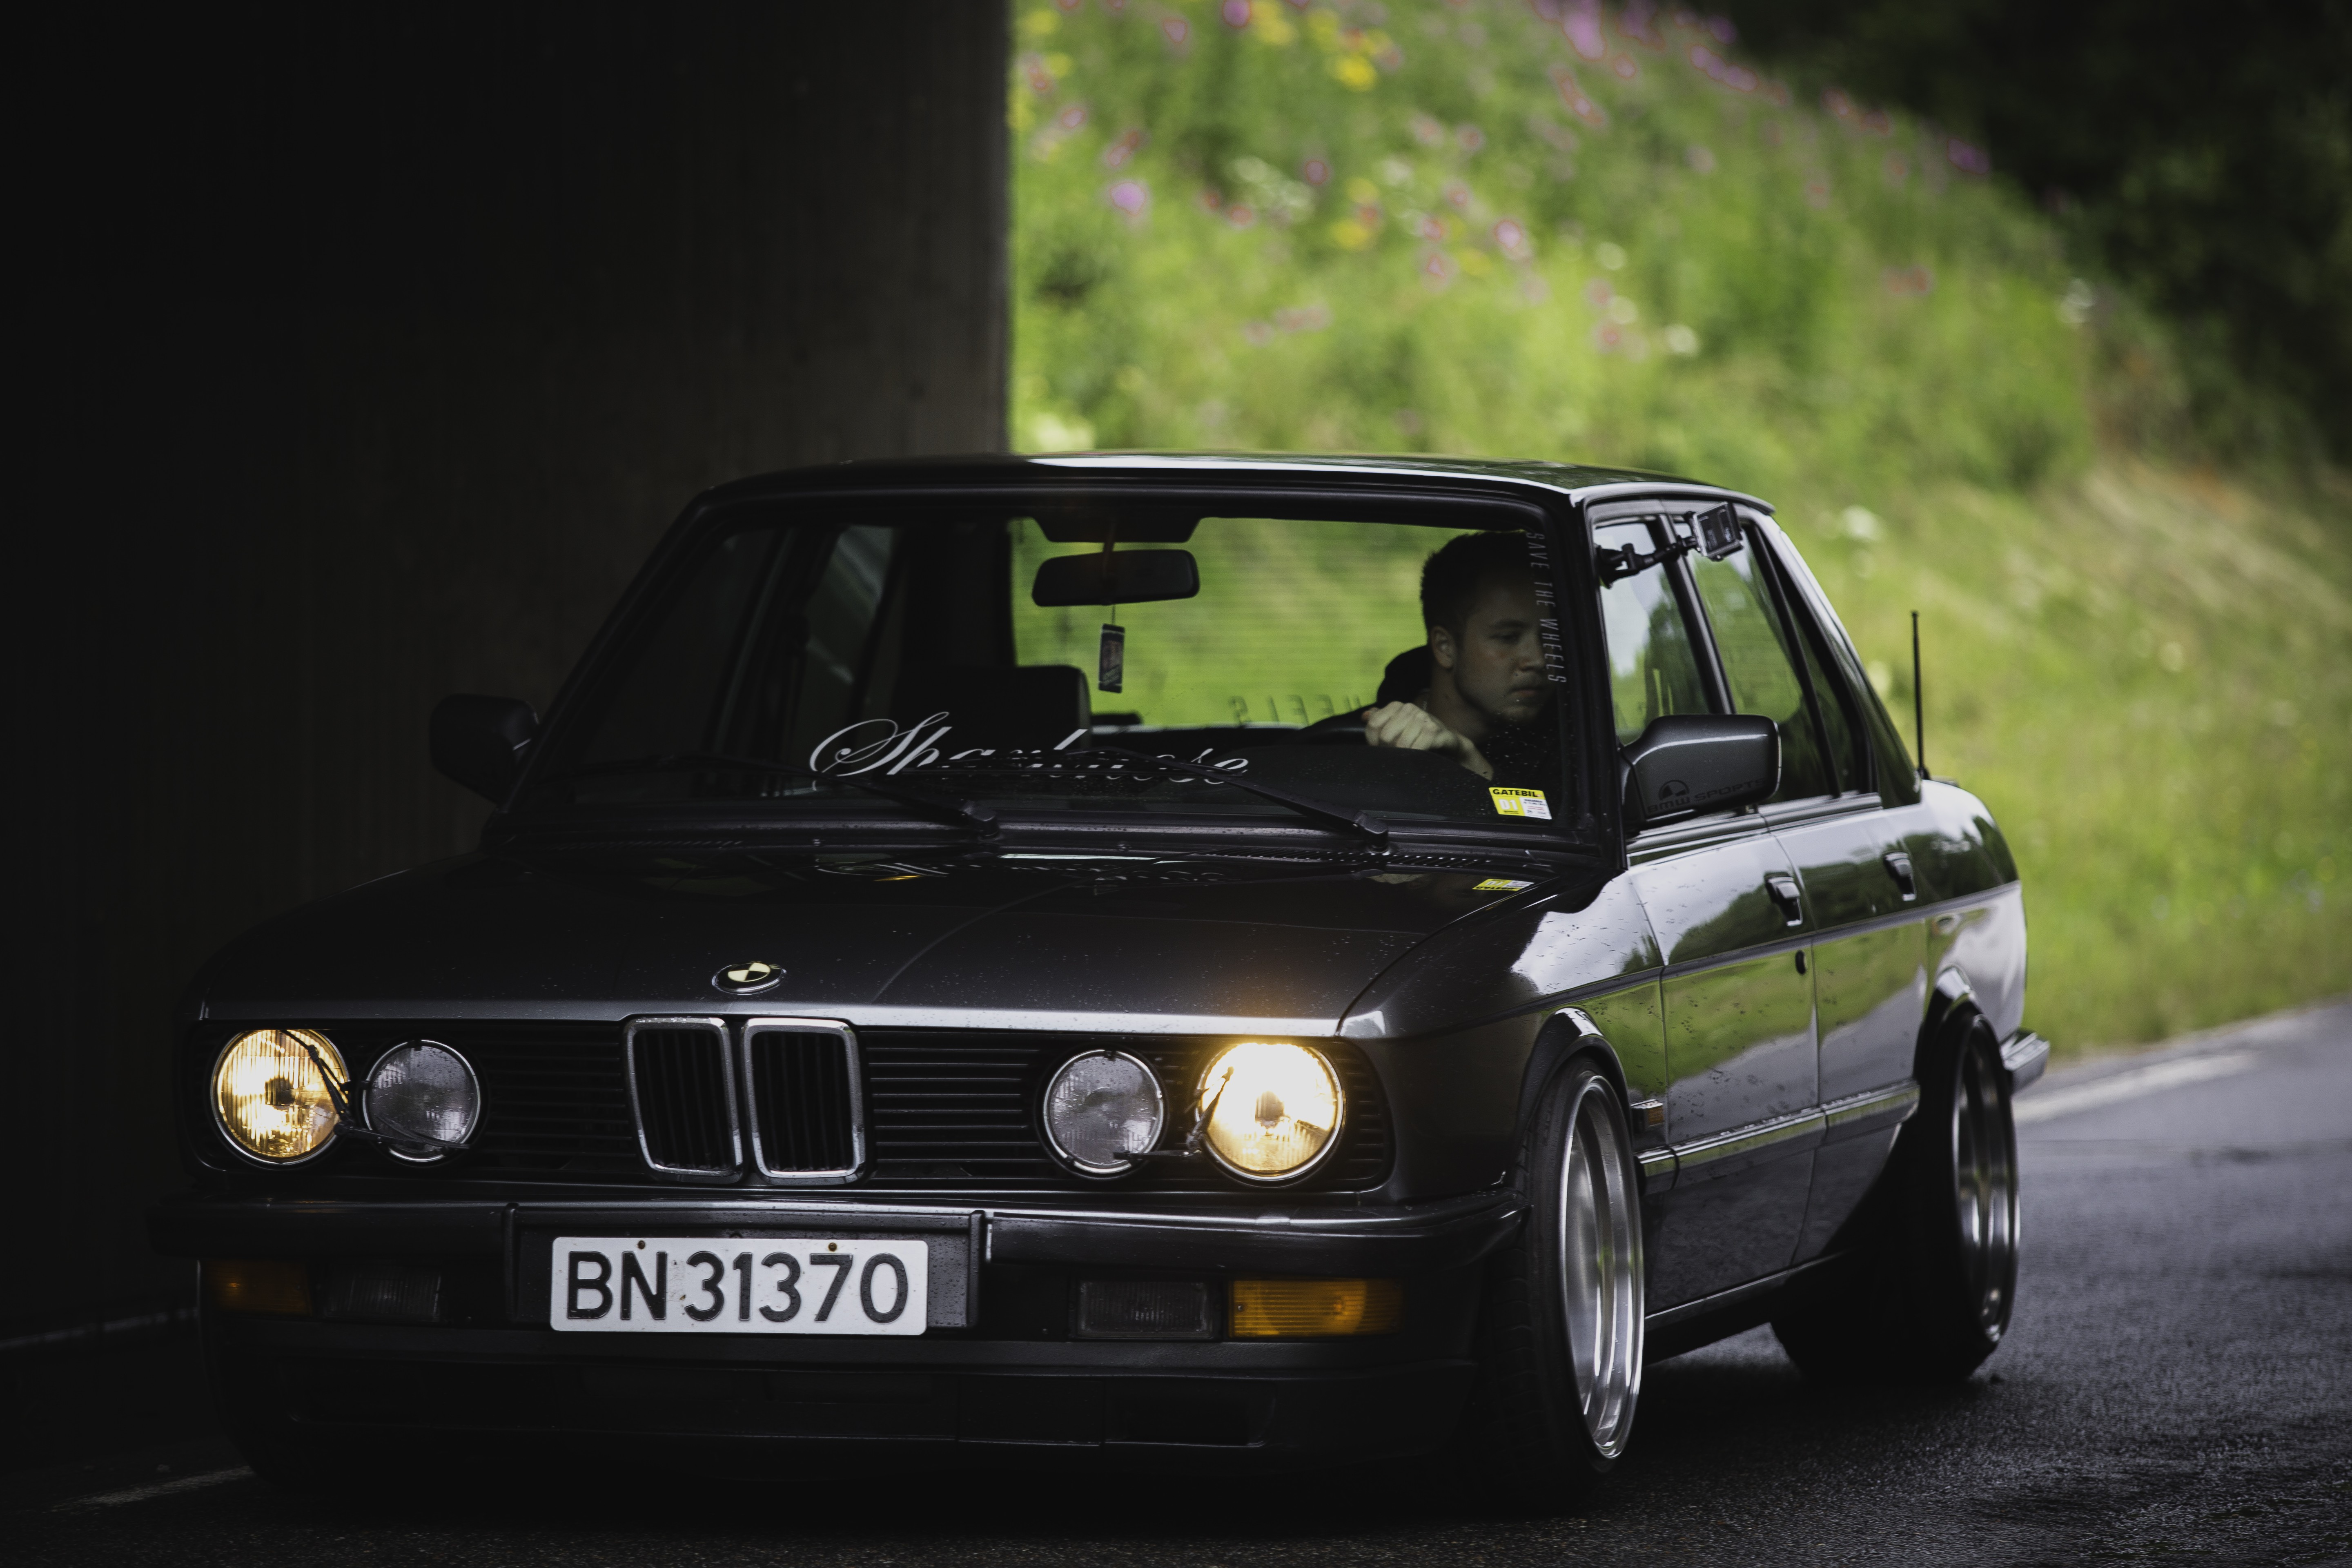 Download wallpaper for 1080x1920 resolution BMW E28 Stance 5760x3840